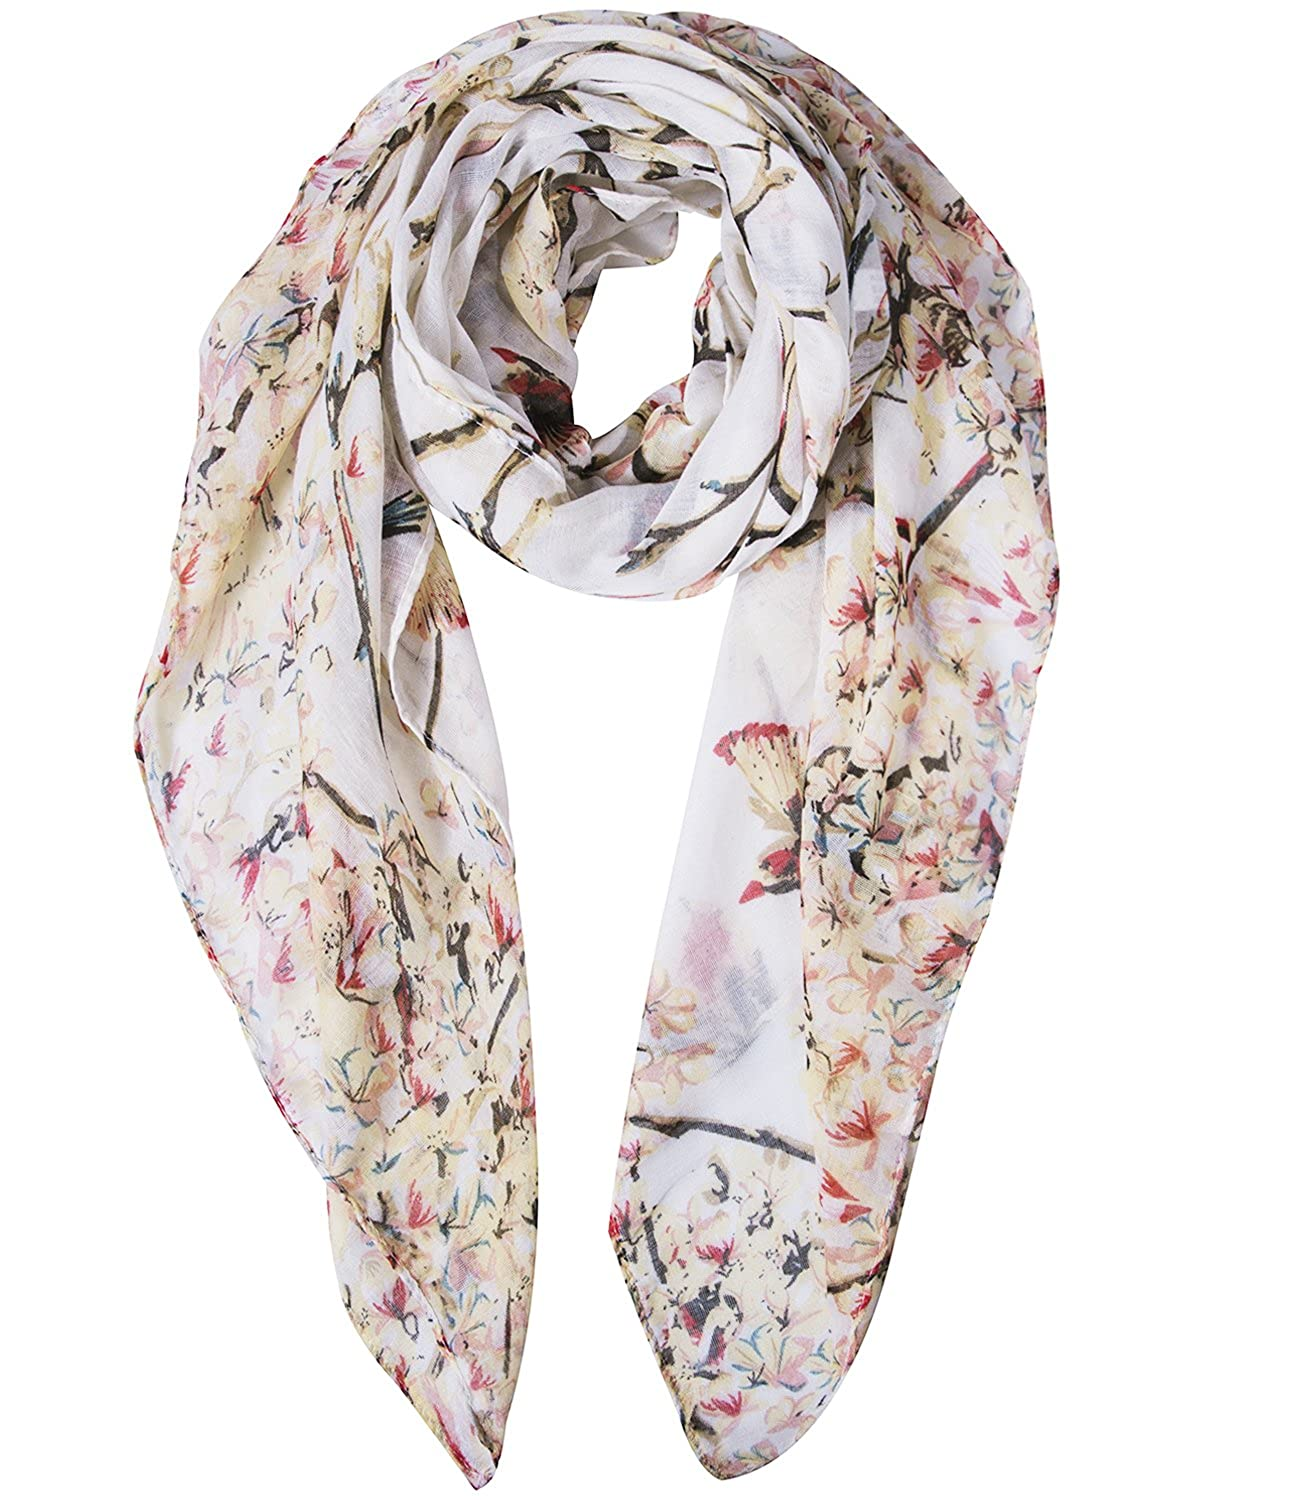 Comfortable Winter Hottest Women Fashion Solid Cotton Voile Warm Soft Silk Scarf Shawl Cape Complete Range Of Articles Apparel Accessories